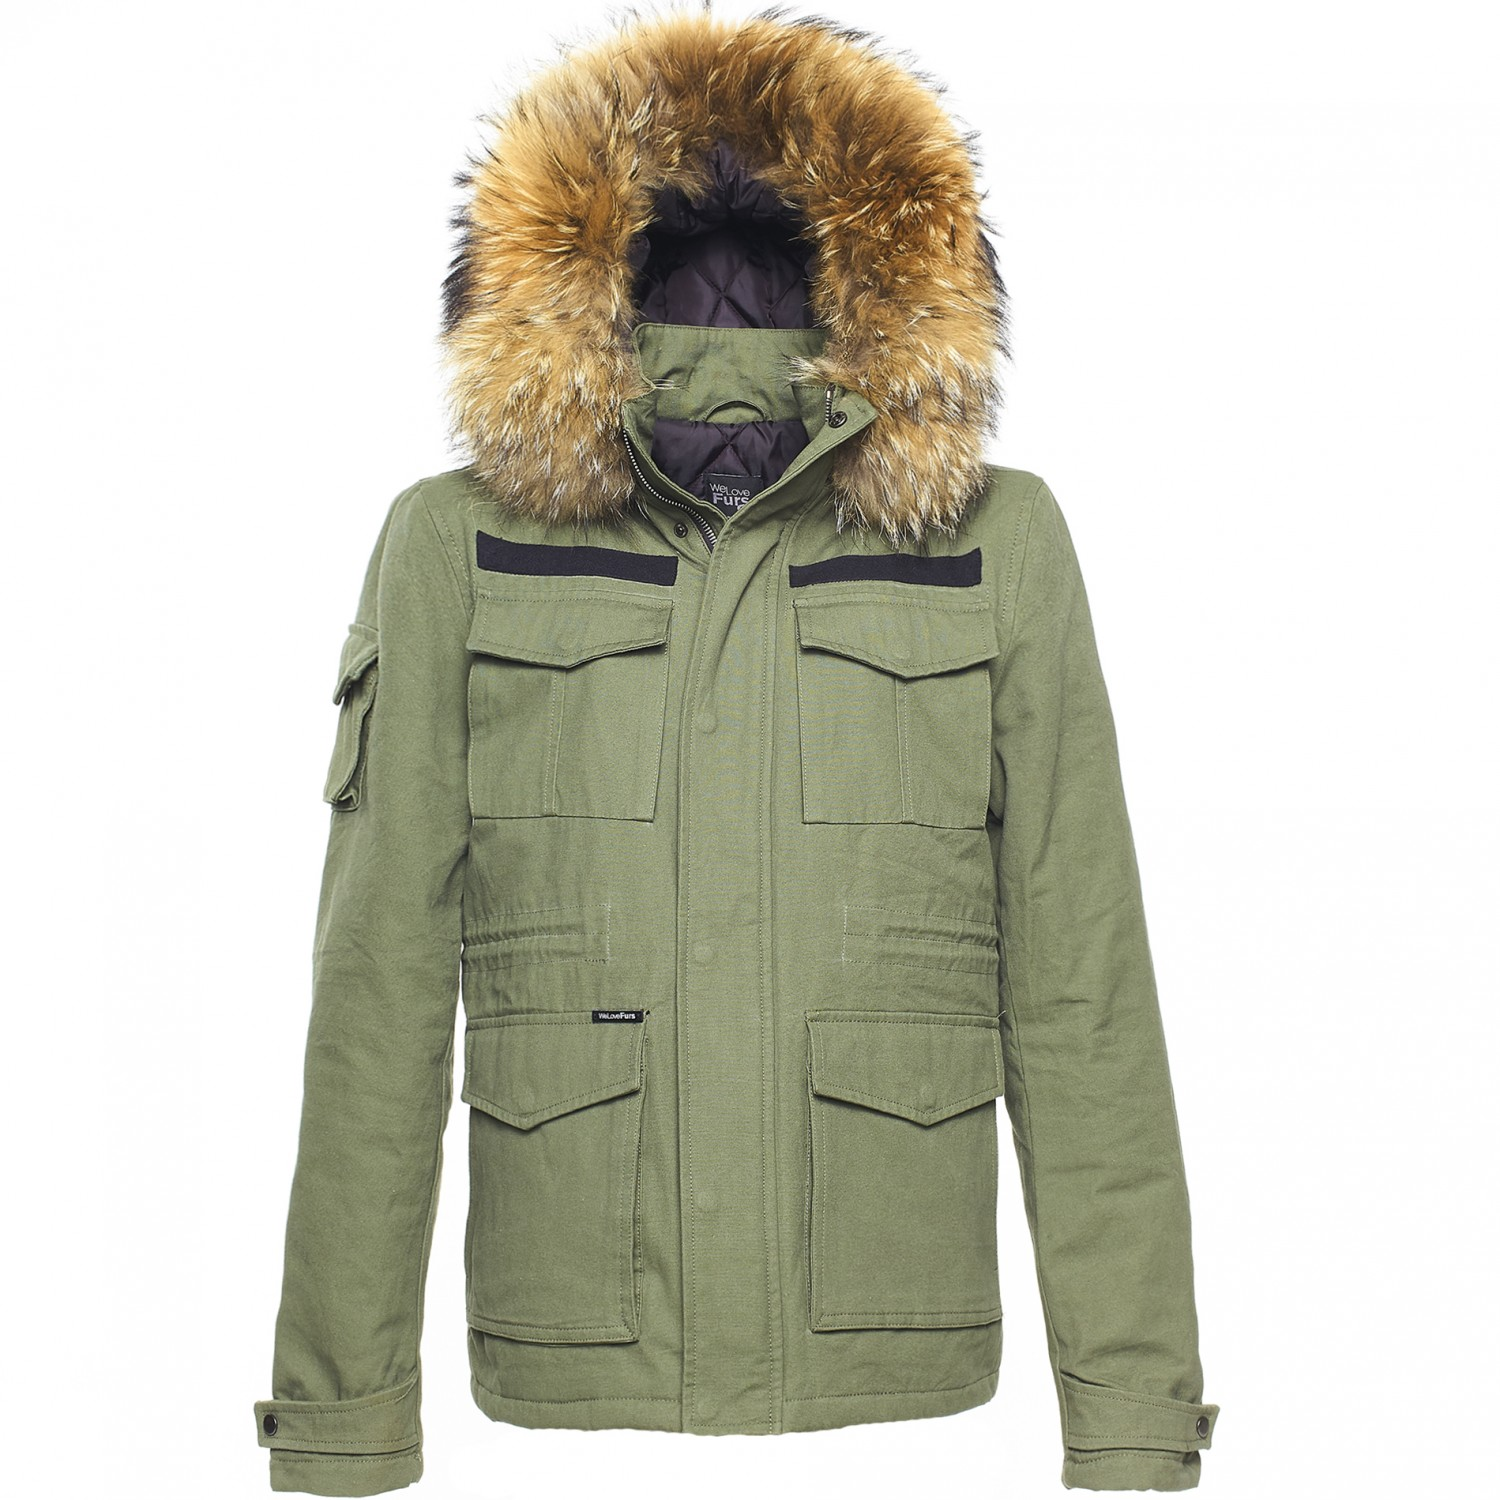 Men's Army Jacket with fur